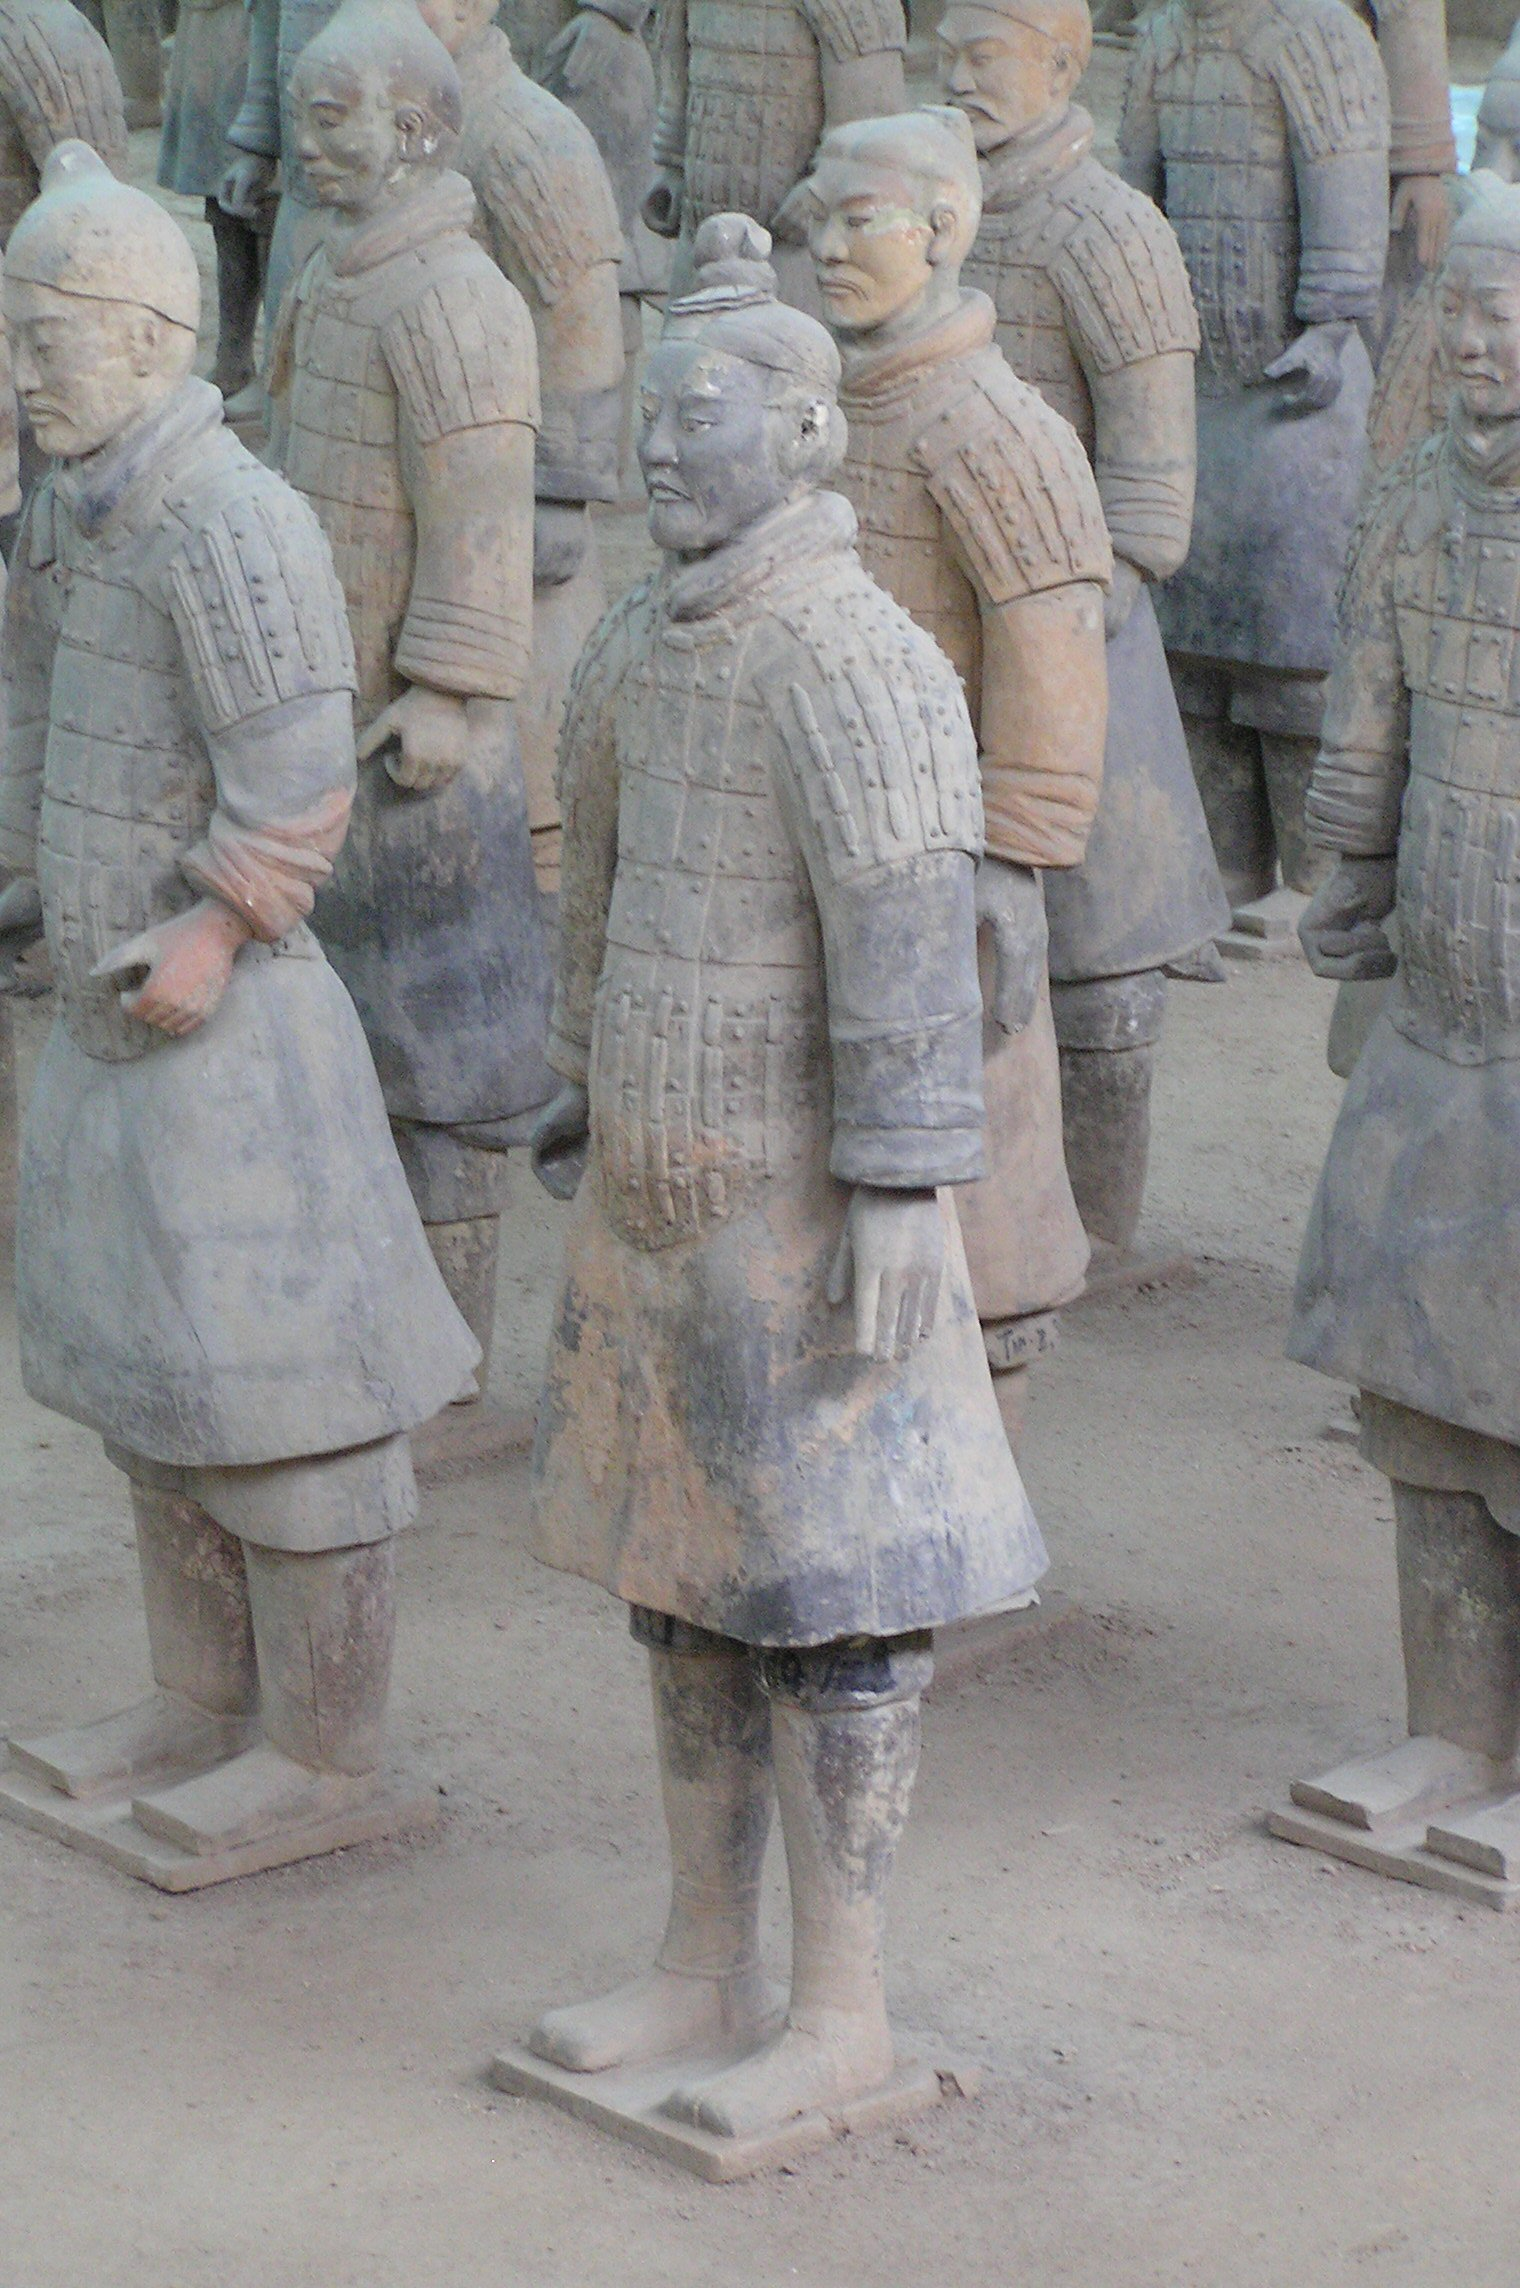 Terracotta Army of Qin Shi Huang.